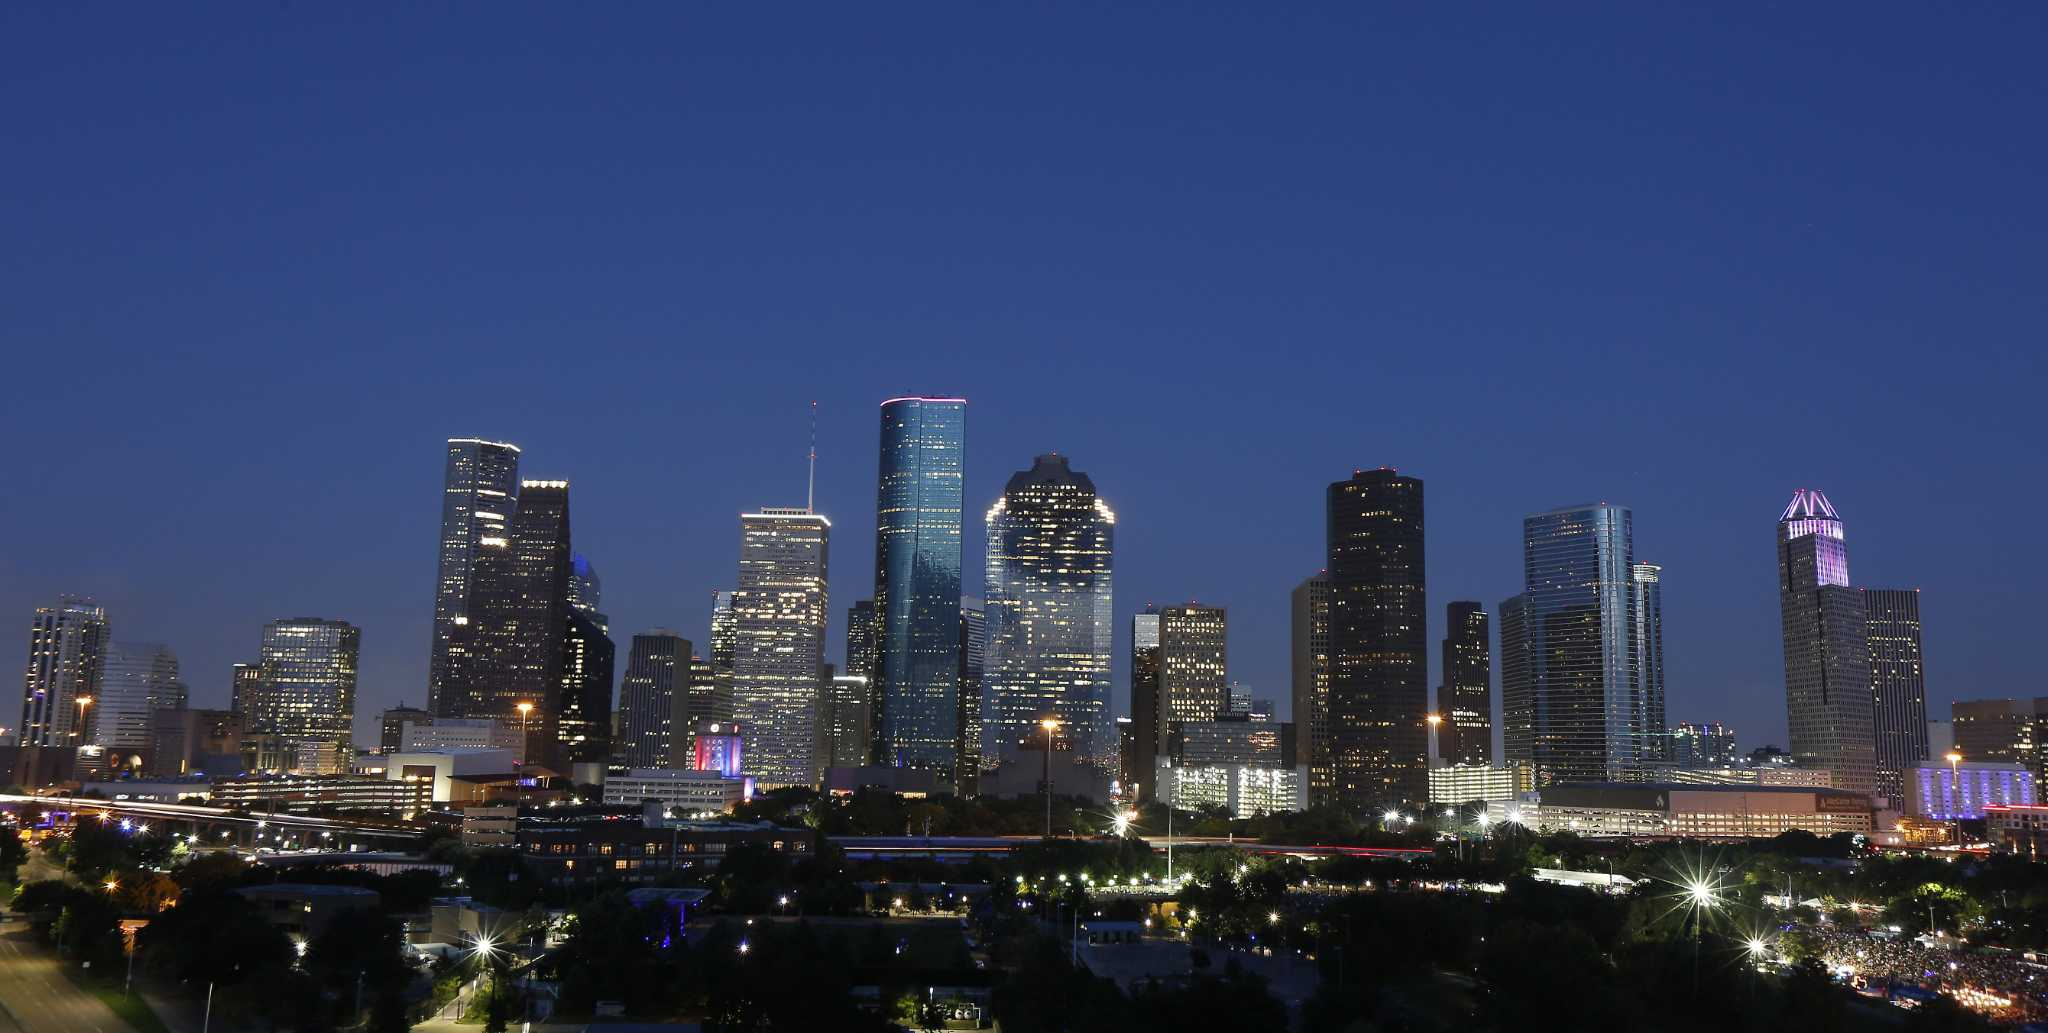 Houston region could account for 30% of Texas economy: report